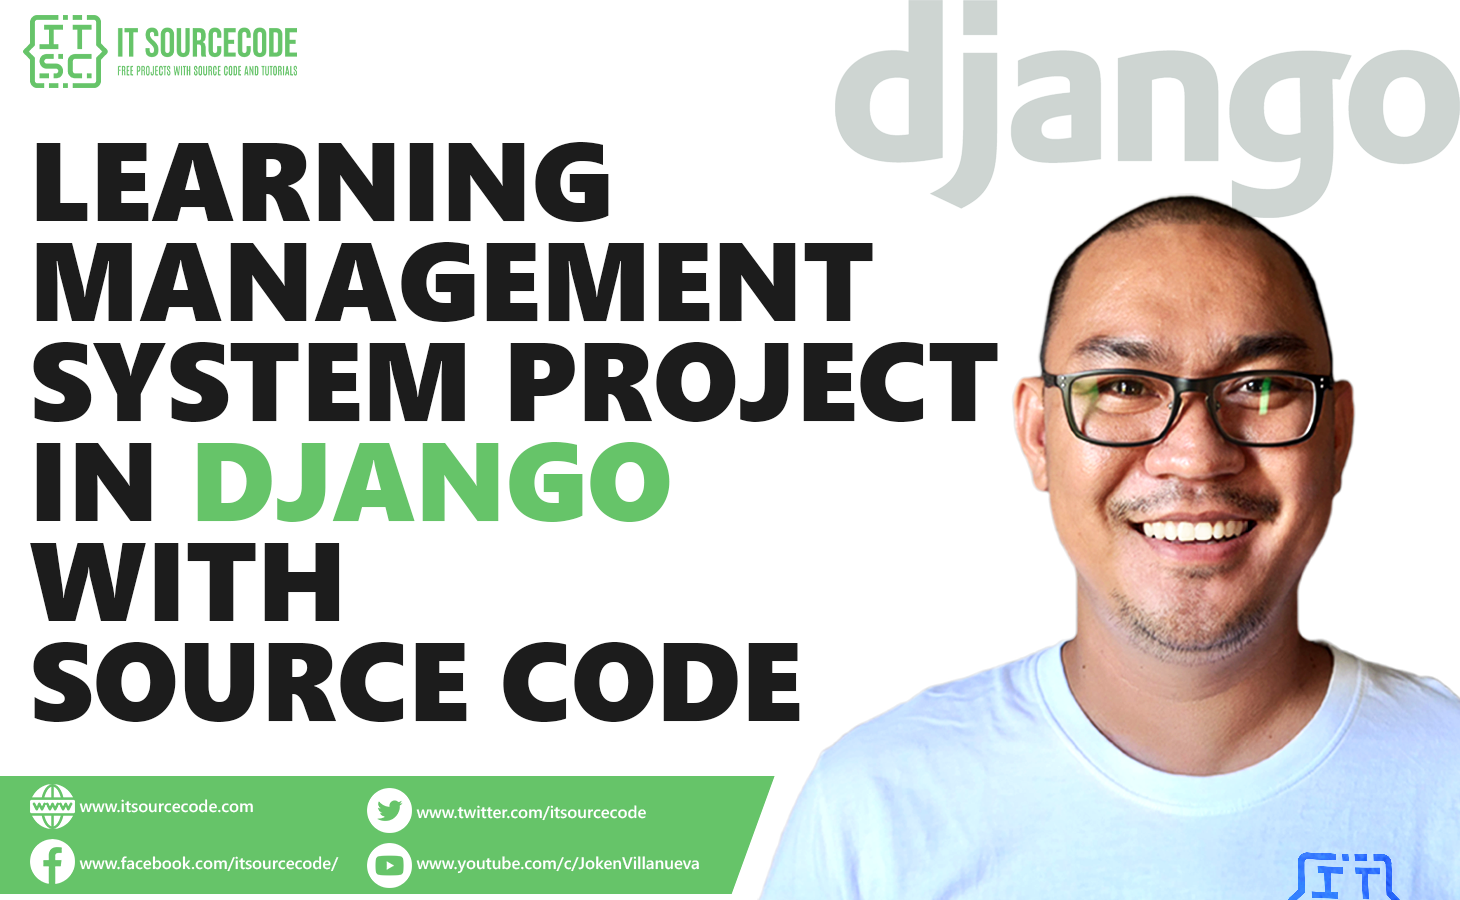 Learning Management System Project in Django with Source Code